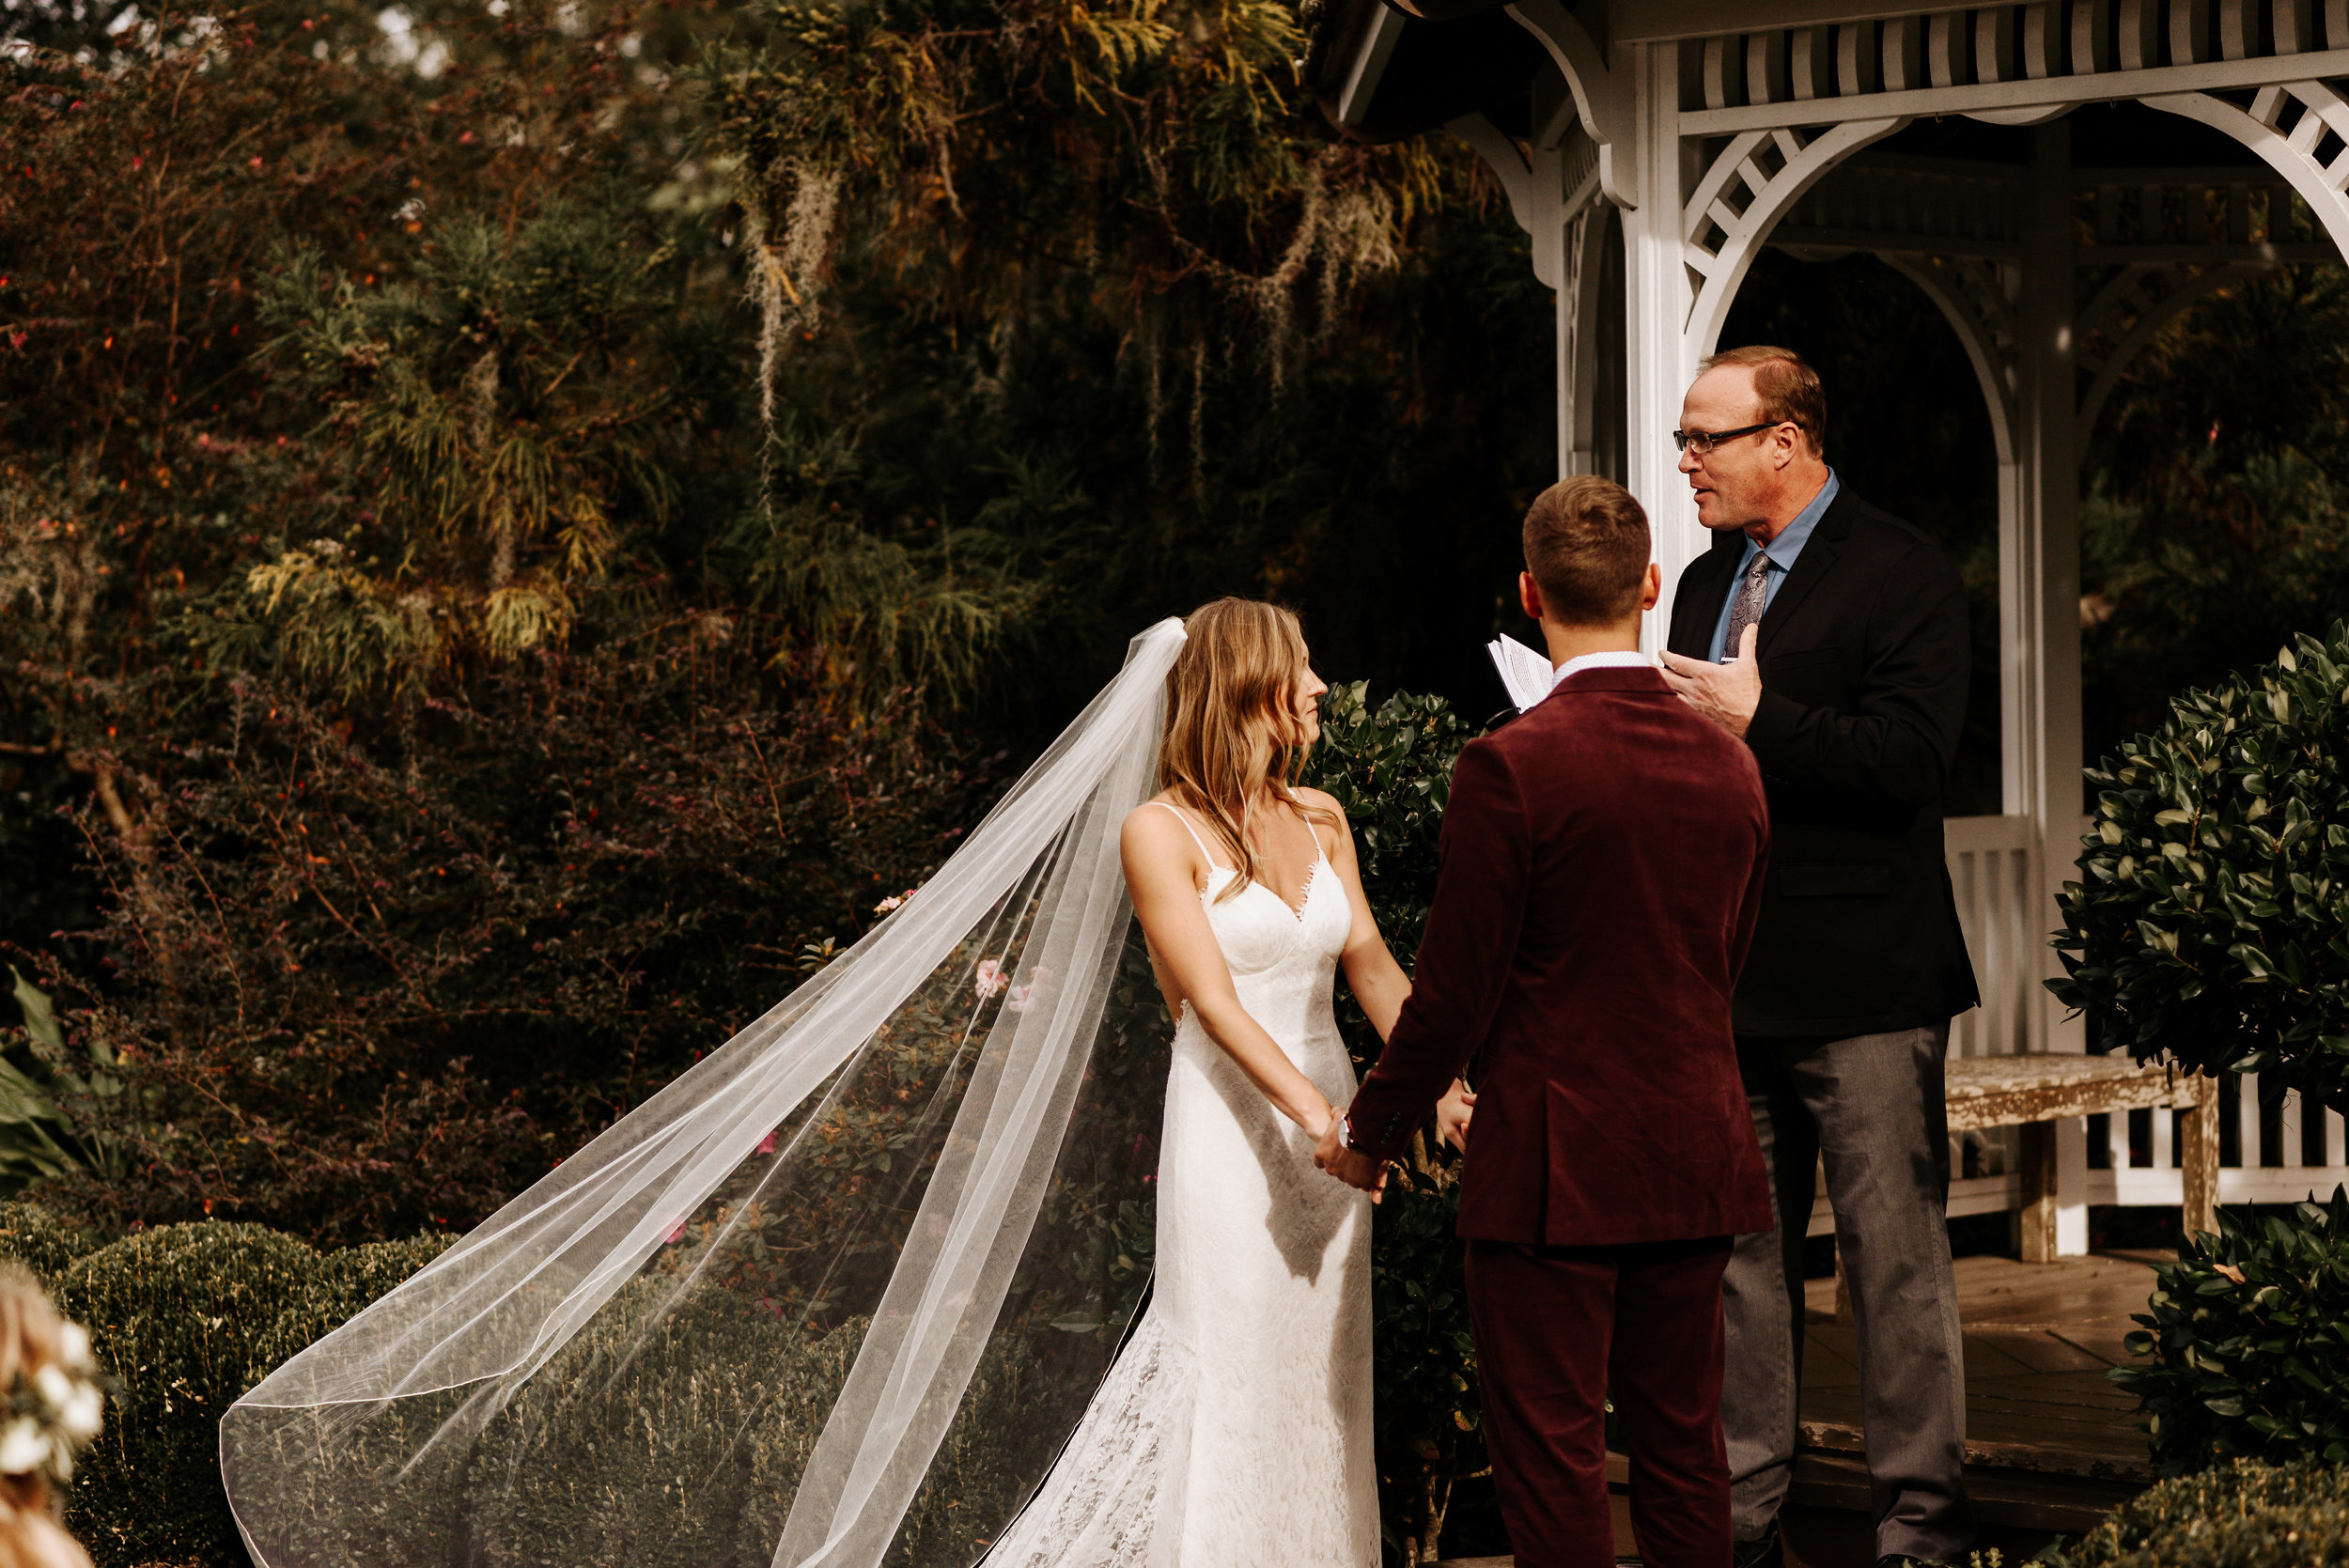 Kourtney_Sean_Savannah_Georgia_Wedding_Wormsloe_Histroic_Site_Coastal_Georgia_Botanical_Gardens_Photography_by_V_6977.jpg